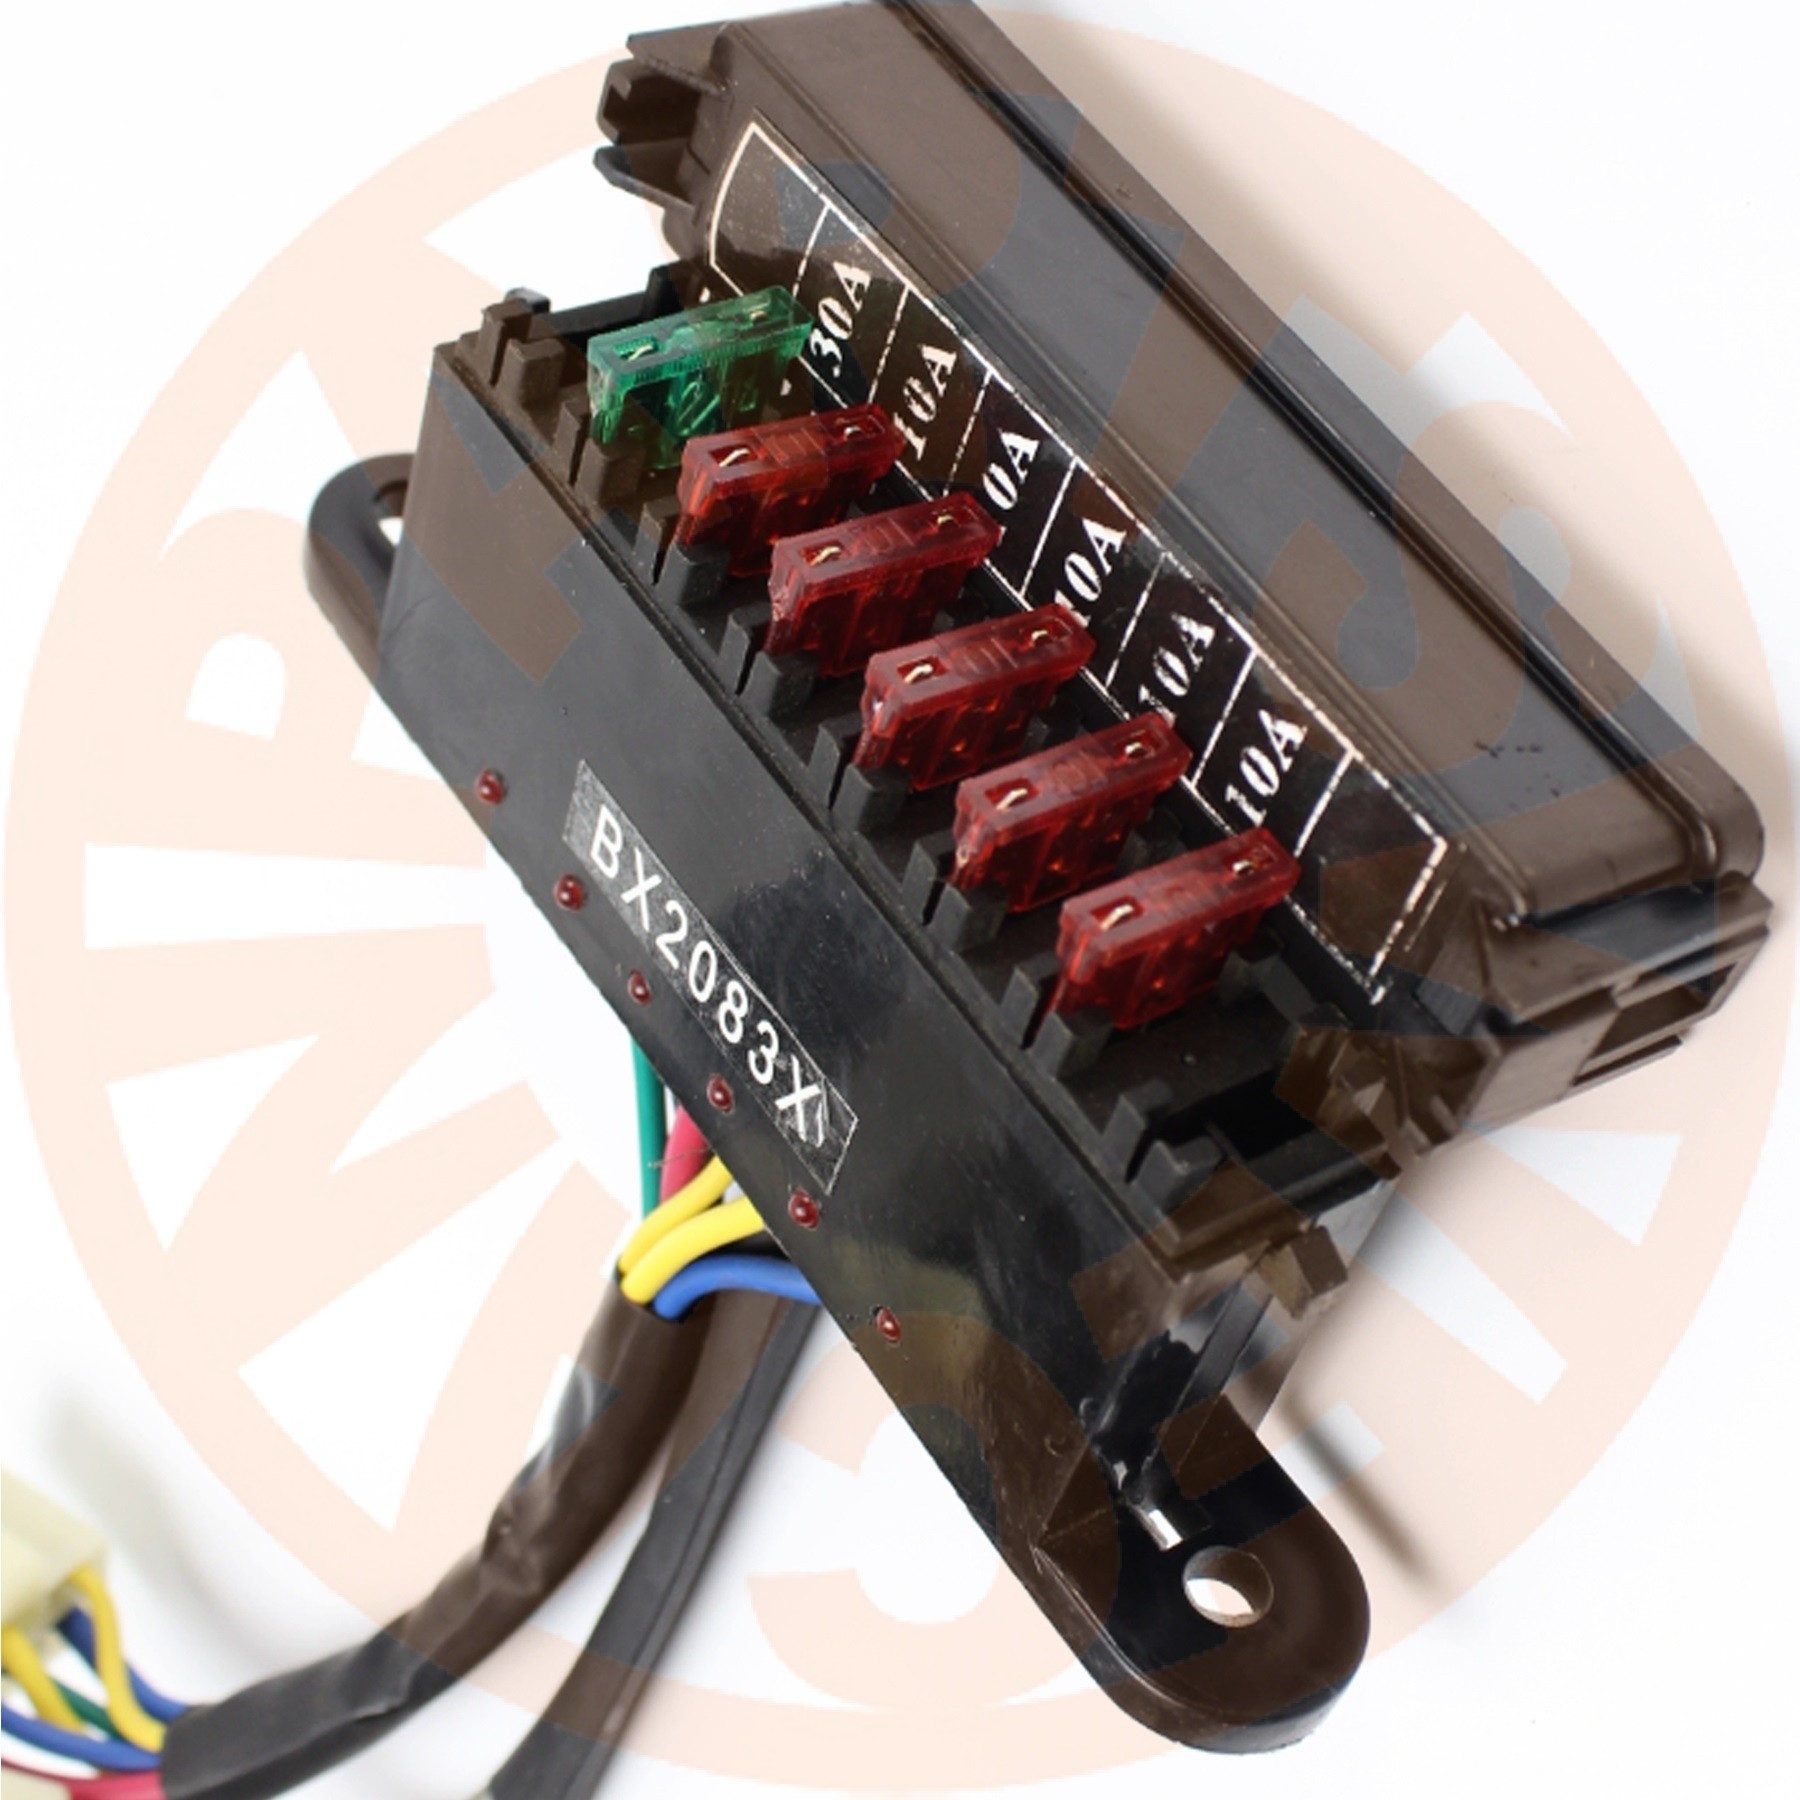 Aftermarket Fuse Box Schematic Diagram Electronic Mark 5 Astra Bx2083x Heli H2000 Forklift 57 Ton Parts Rhpartswecan At